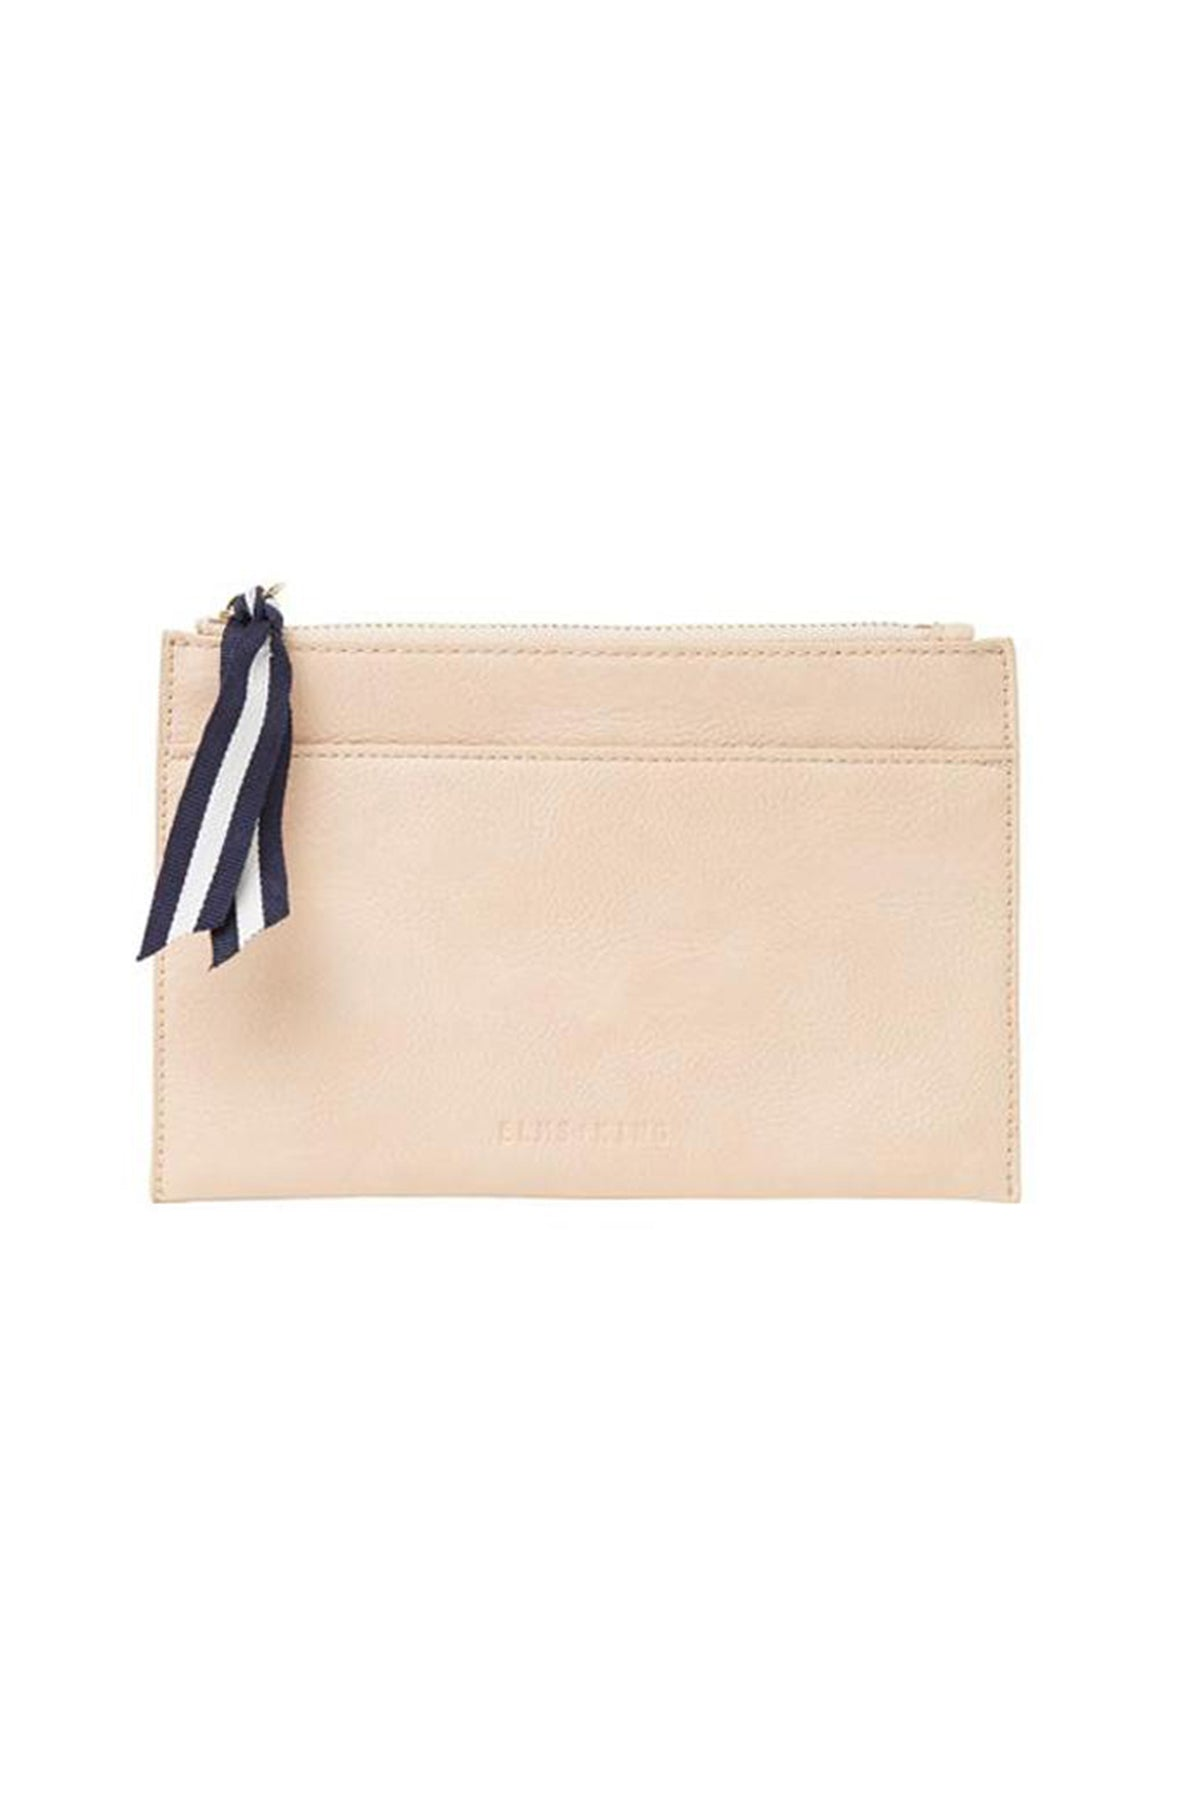 New York Nude Clutch